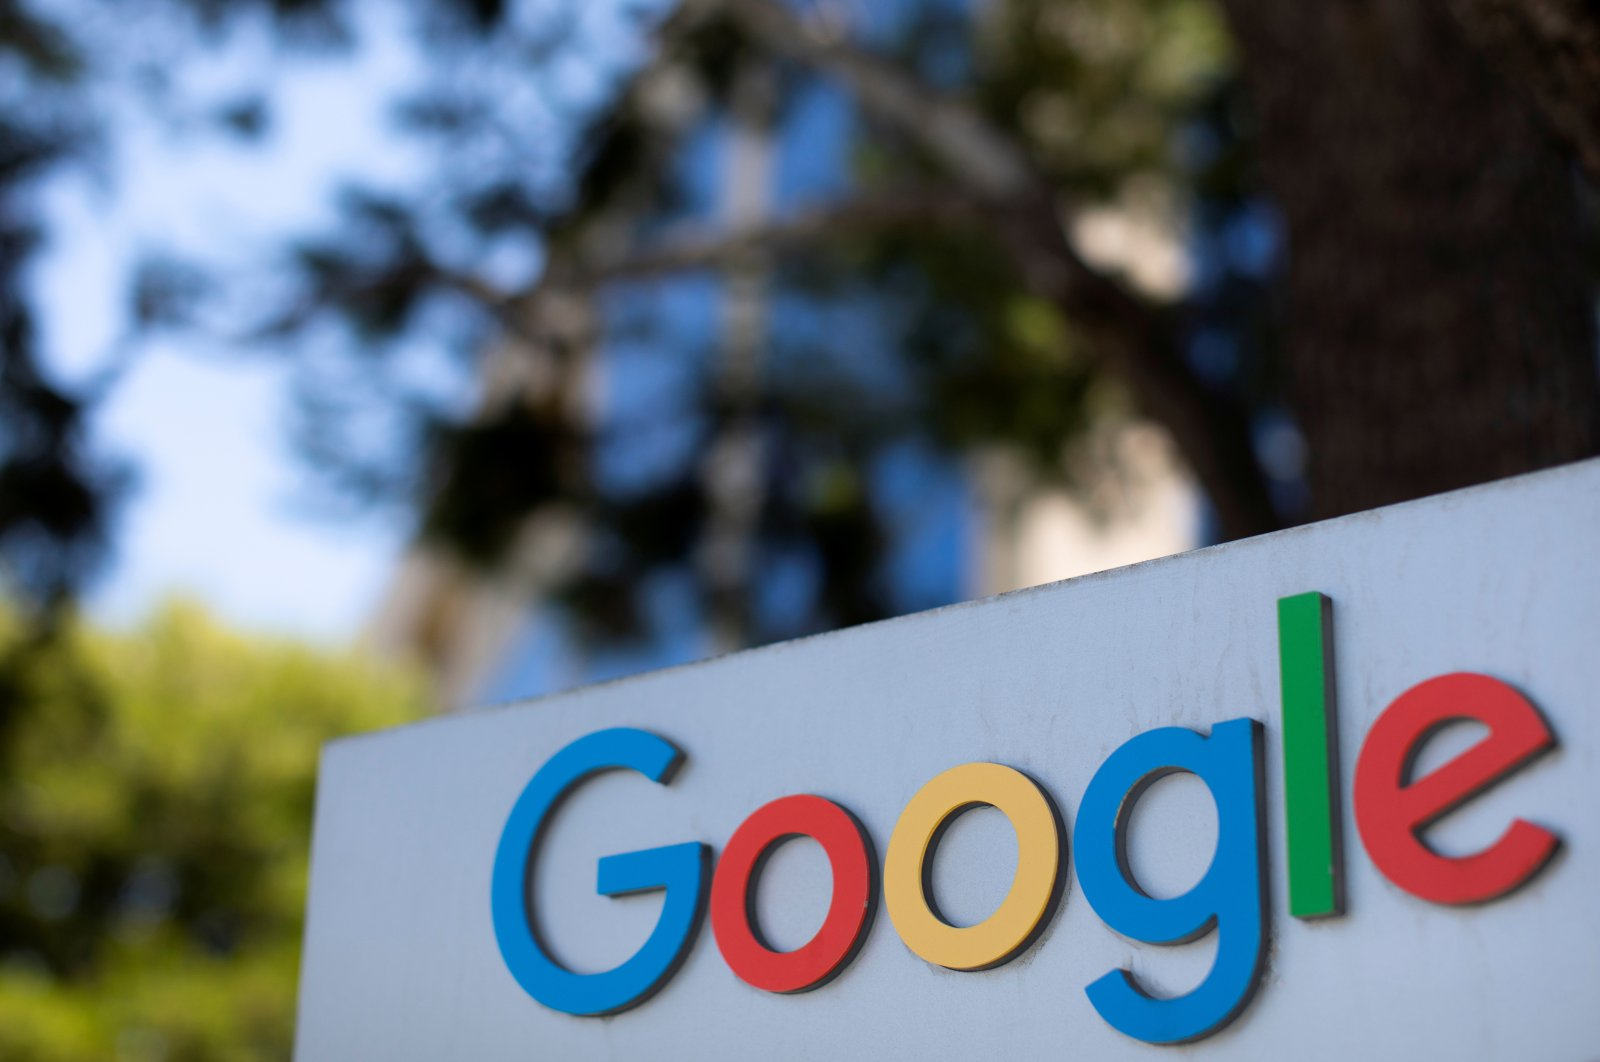 A Google logo is shown at one of the company's office complexes in Irvine, California, U.S., July 27, 2020. (REUTERS Photo)